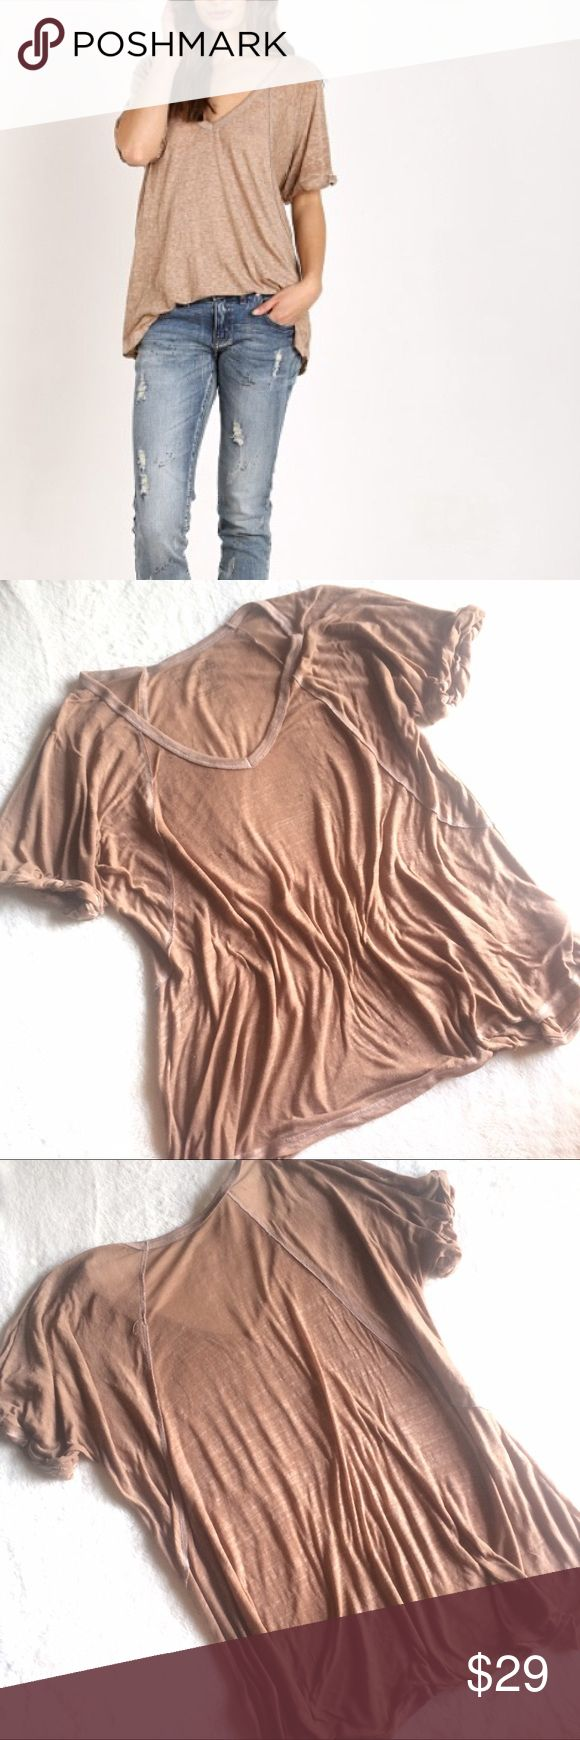 Free People We The Free Free Fallin Tee NWT Free People We The Free Free Fallin Tee in light brown, driftwood. New twist on an old FP fave, this tee features the same slouchy, oversized fit but it's in a so-soft burnout jersey. Ribbed V-Neck with rolled short sleeves. Subtle Hi-Lo hem. Perfectly distressed, all-American styles. We The Free is an exclusive, in-house label. 50% Polyester 38% Cotton 12% Rayon Free People Tops Tees - Short Sleeve